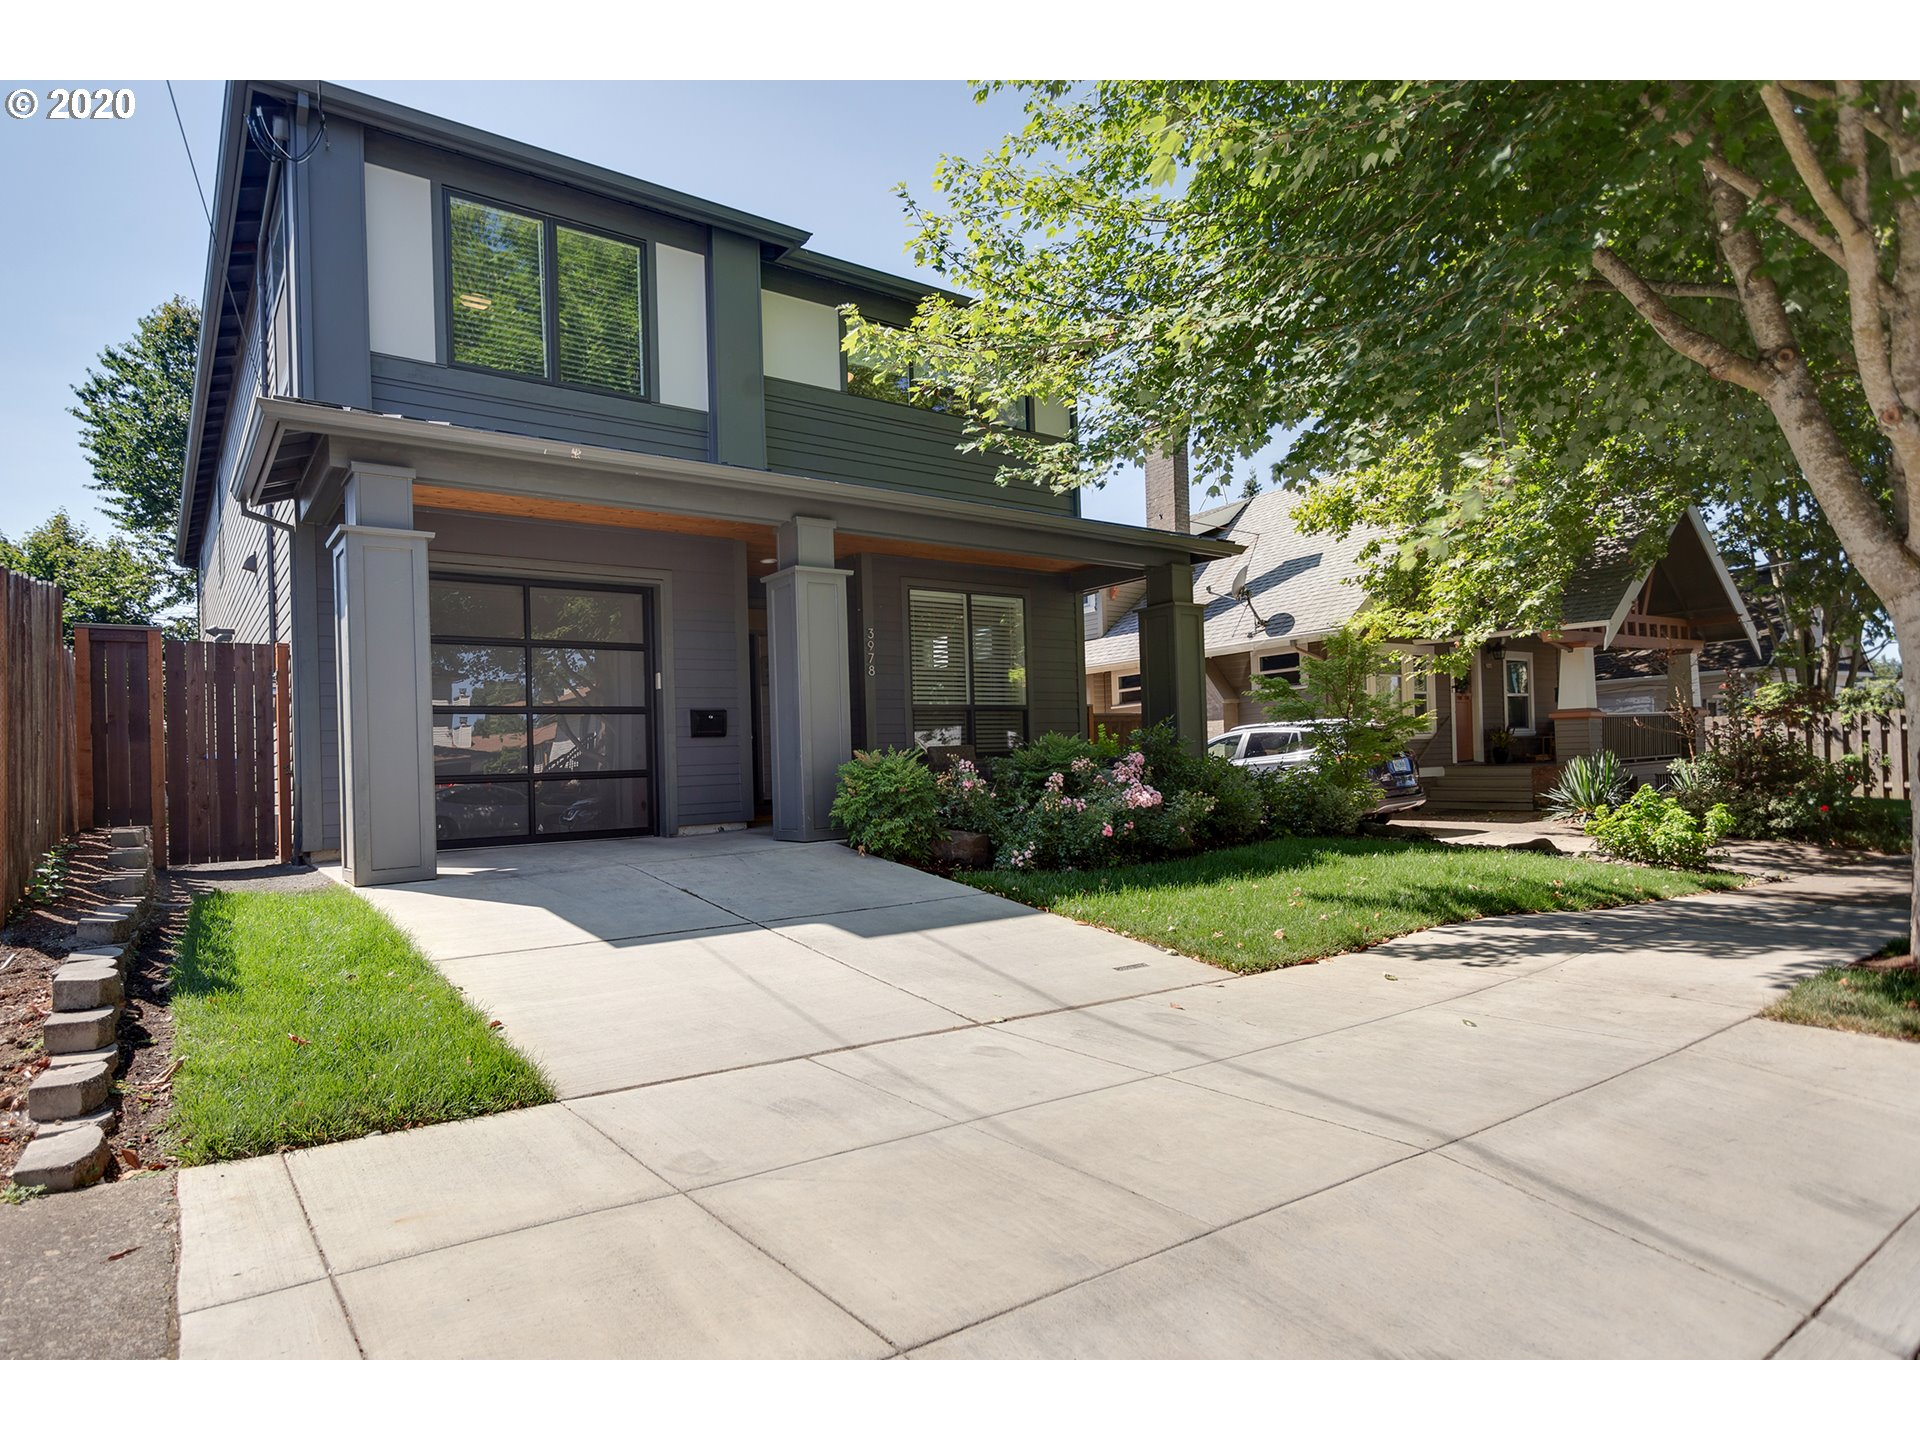 Great location for this gorgeous like new Renaissance Home.  4bed/2.5 bath, loft and office with closet, 2625SF.  Enjoy year round outdoor living under your covered patio with lighting and BBQ gas hookup.  Engineered hardwoods, kitchen with slab quartz and large island/eating bar.  Bike score 89, walk score of 77. A/C.  No open house.  Exclude yard statues [Home Energy Score = 7. HES Report at https://rpt.greenbuildingregistry.com/hes/OR10186310]